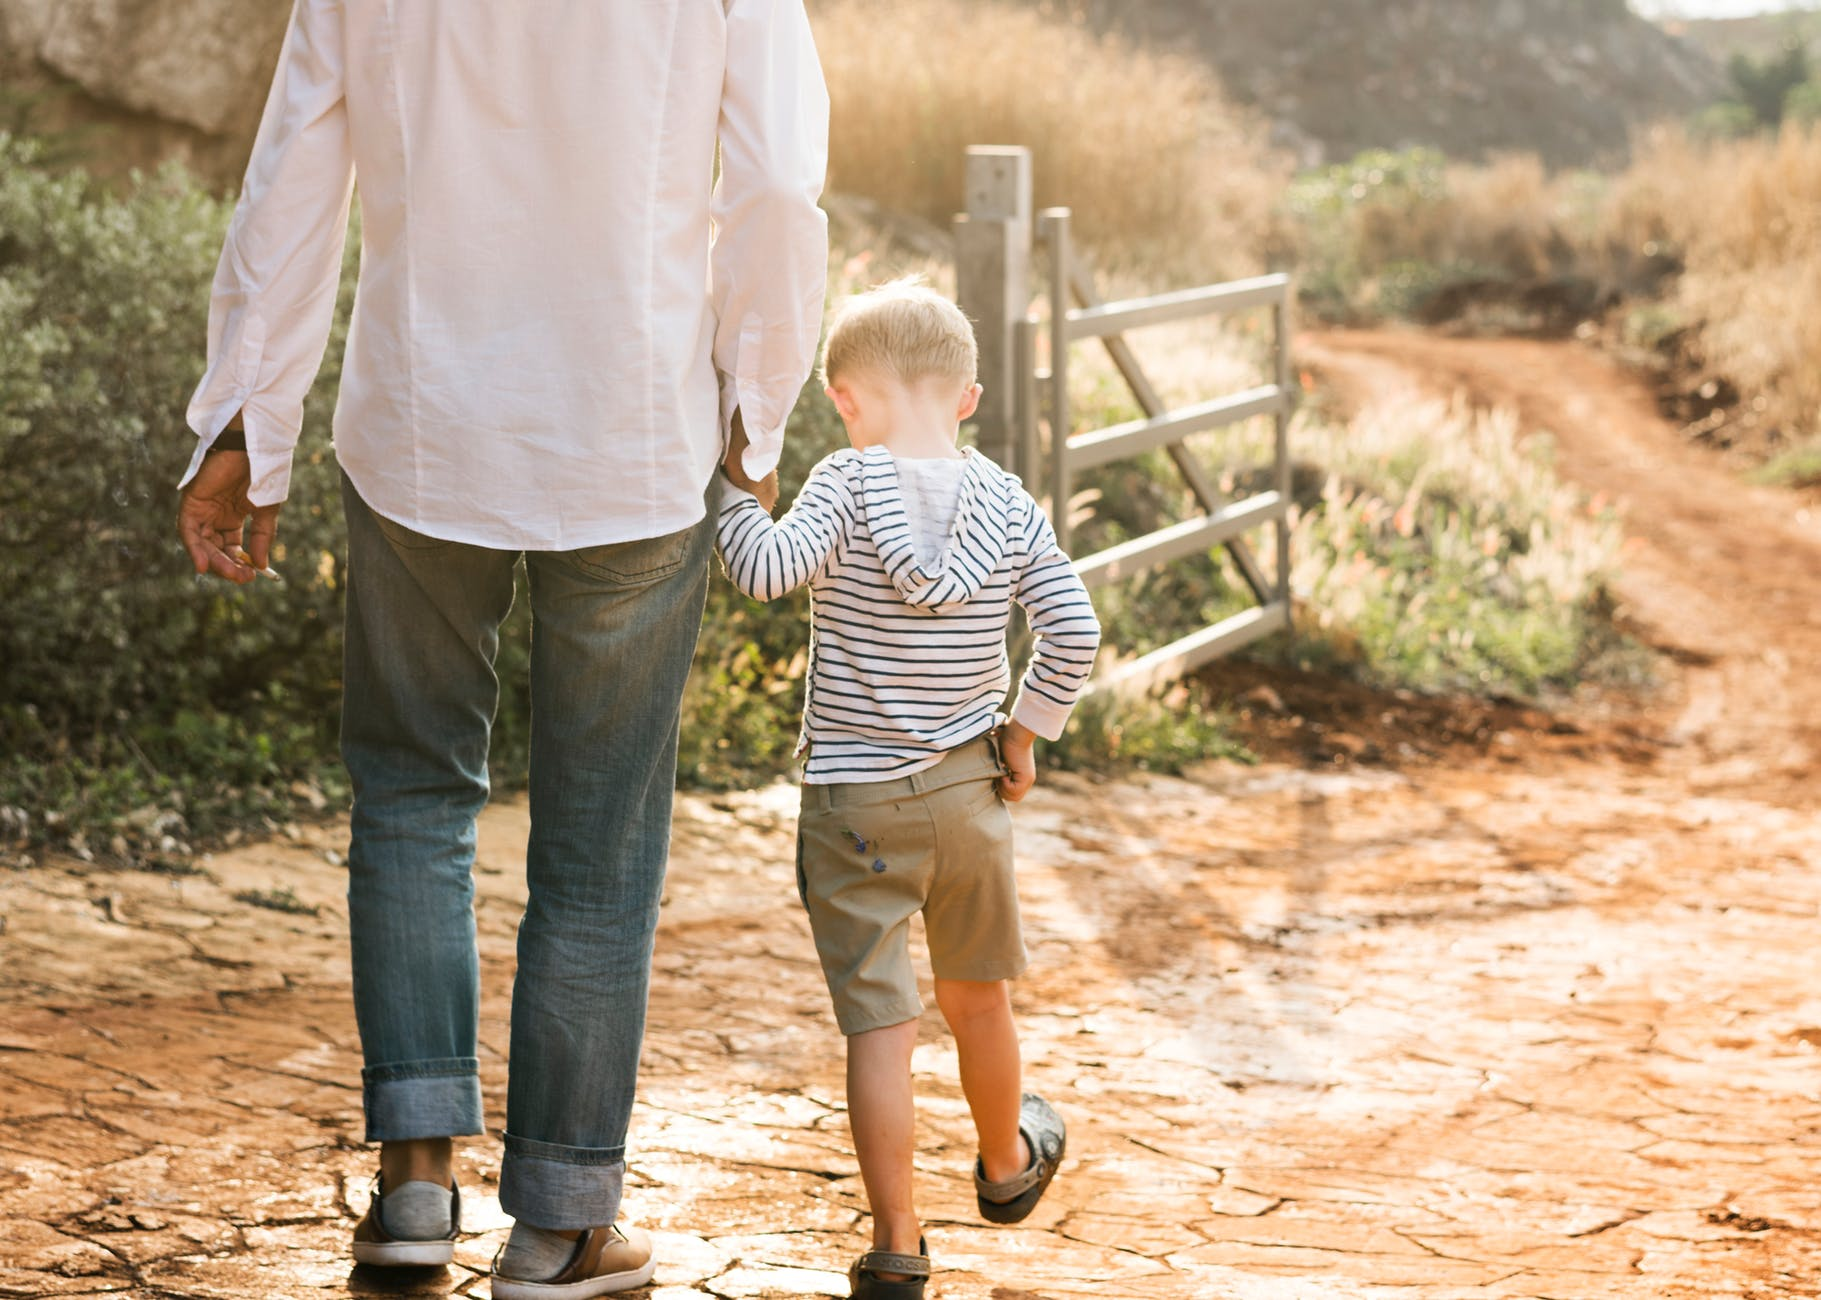 man in white shirt walking with boy near wooden fence gate